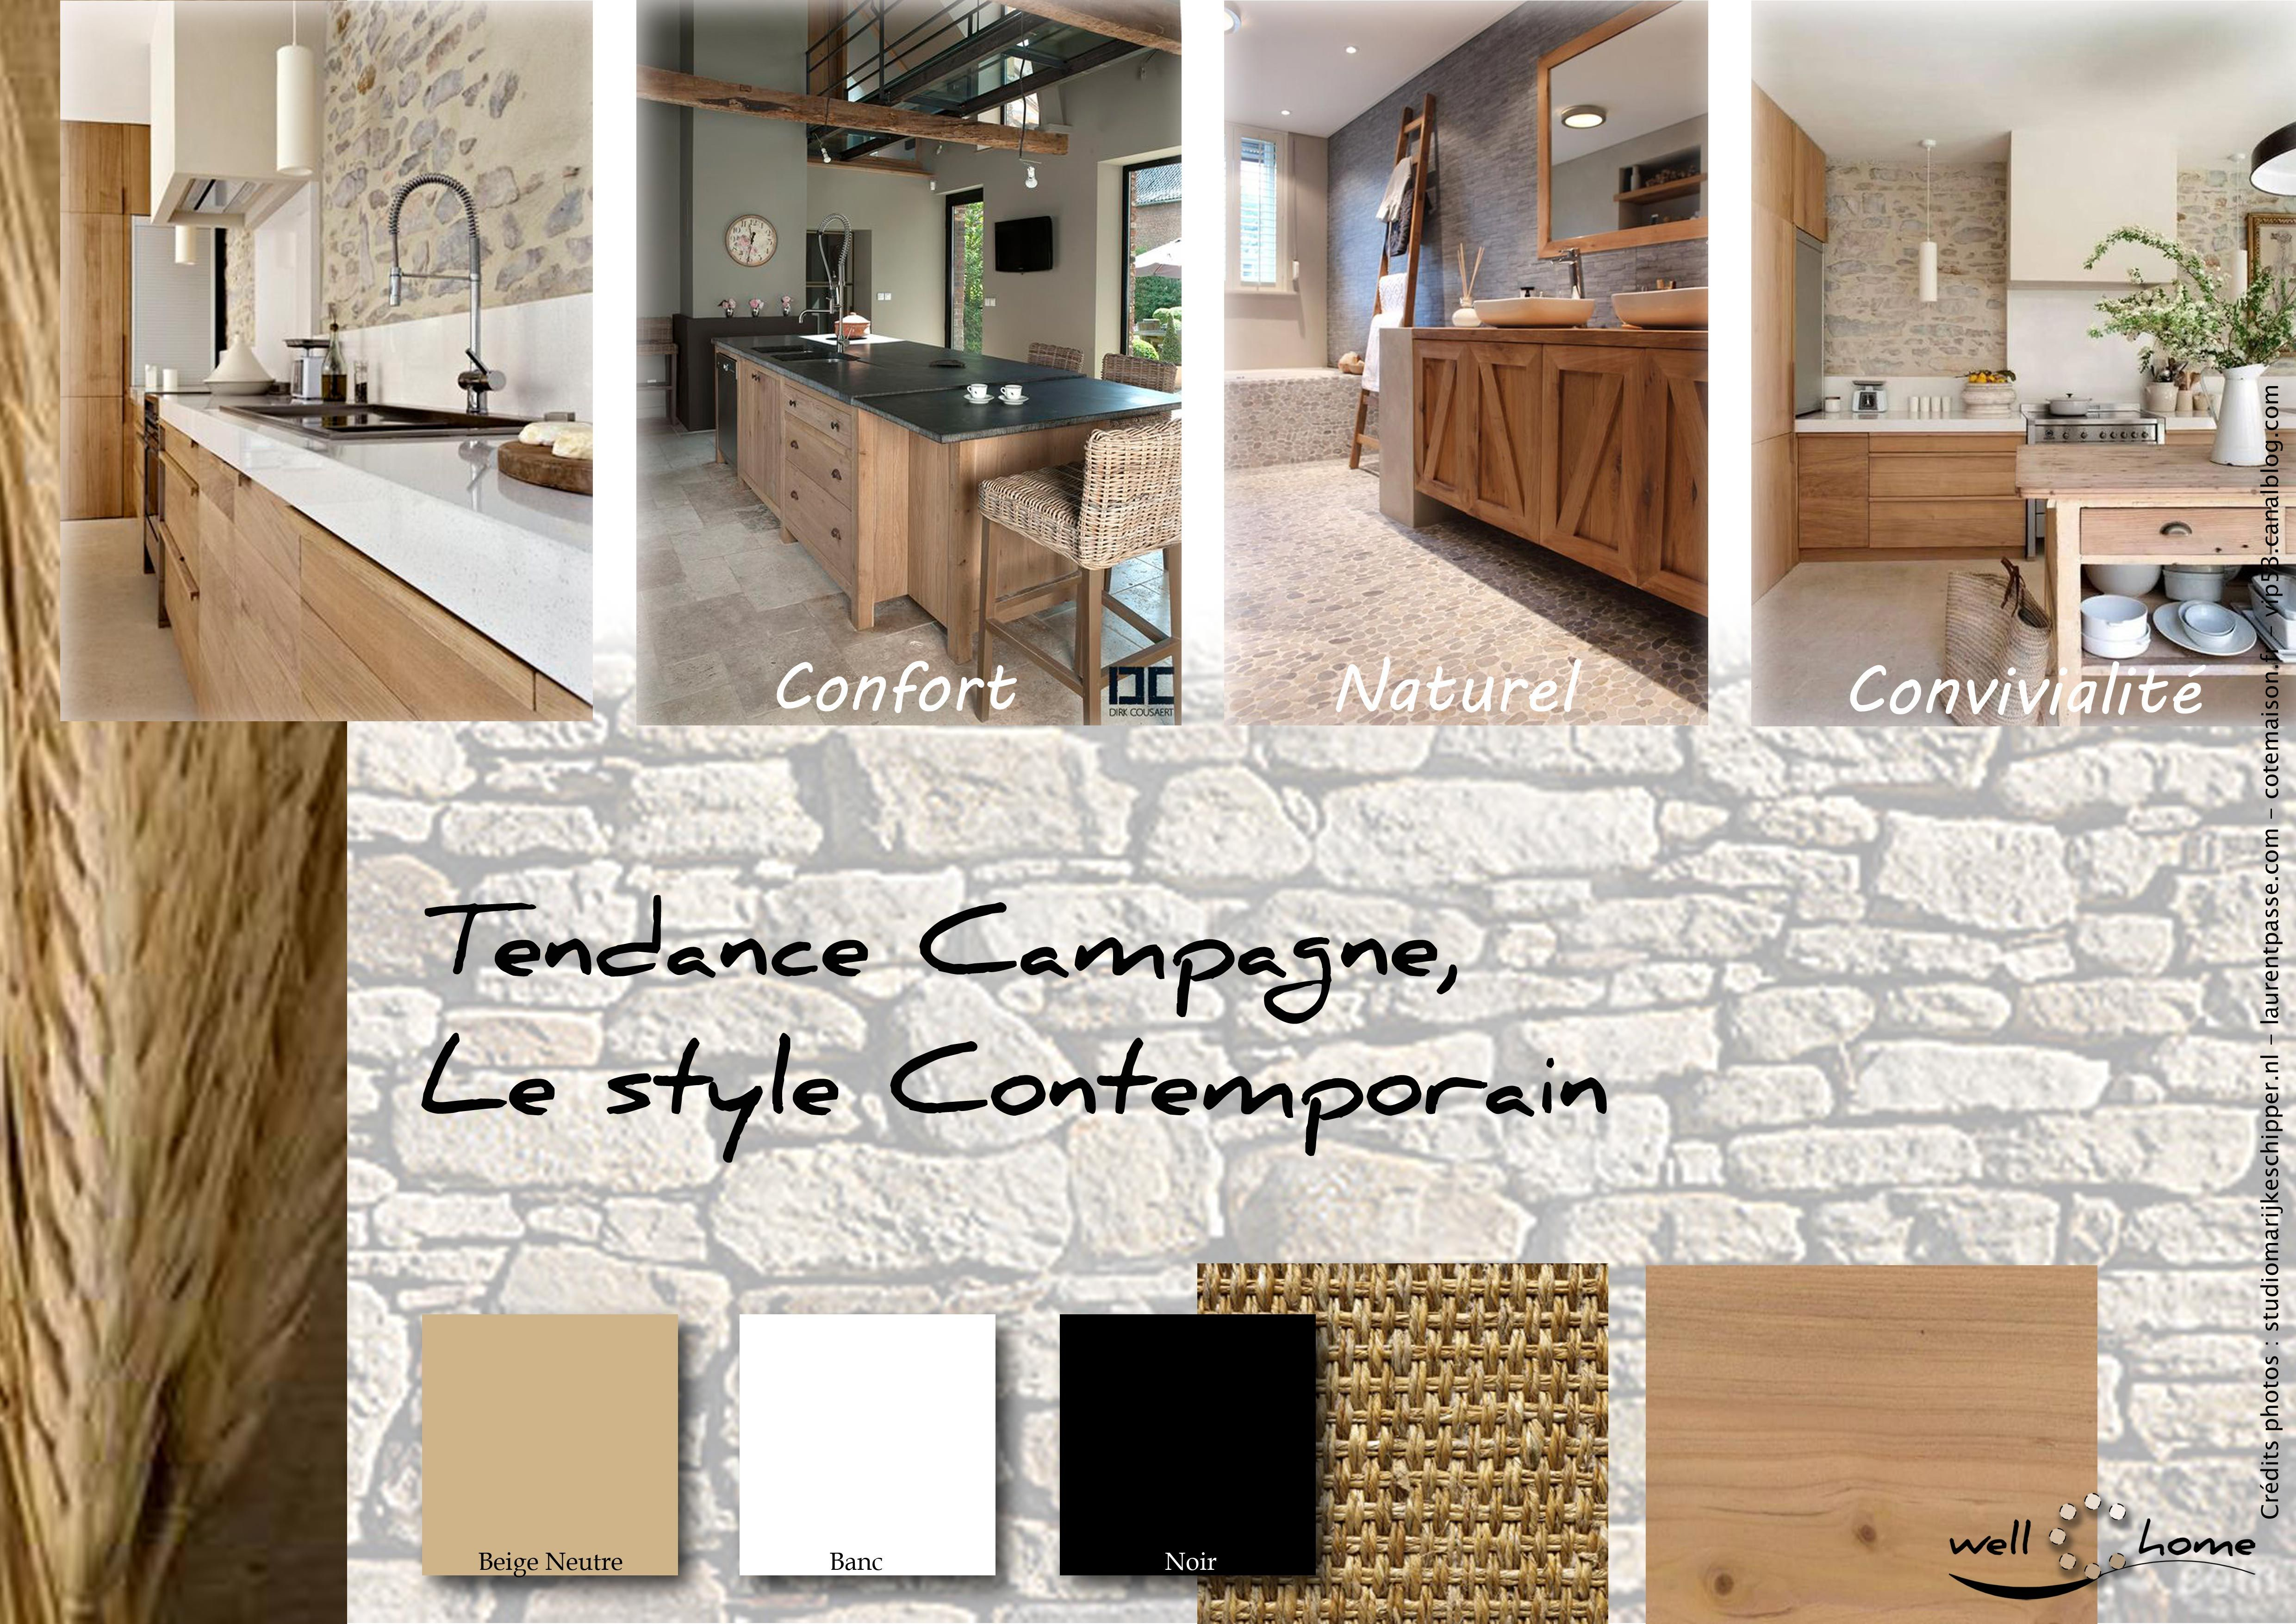 Moodboard d co planche d 39 ambiance tendance campagne style contemporain r alisation well c - Planche d ambiance ...